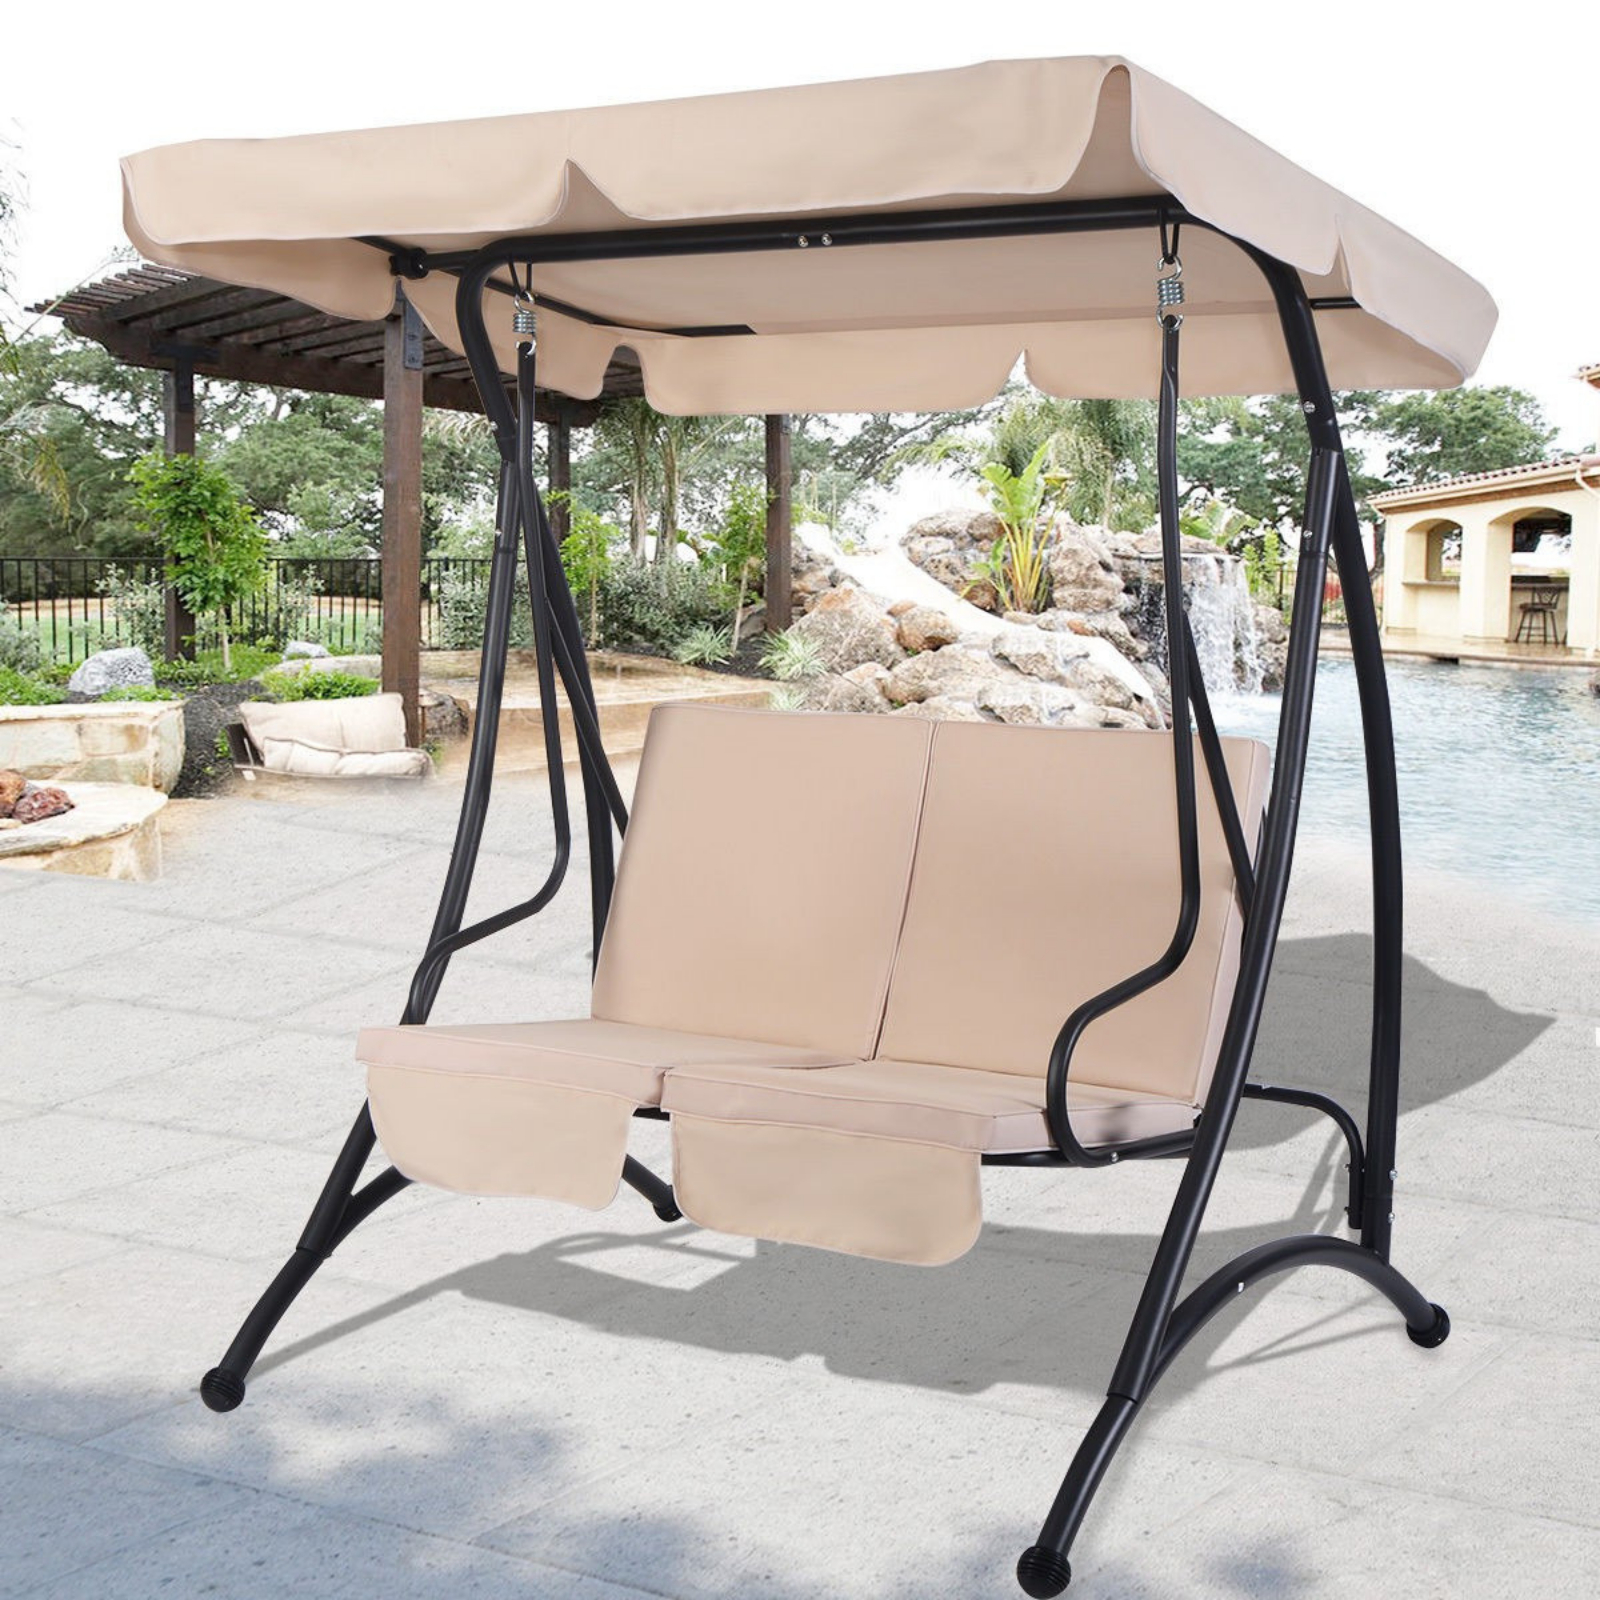 Outdoor Swing With Canopy 2 Person Patio Porch Steel Swing Double Hanging Seat Inside Most Recent Canopy Patio Porch Swing With Stand (Gallery 6 of 25)